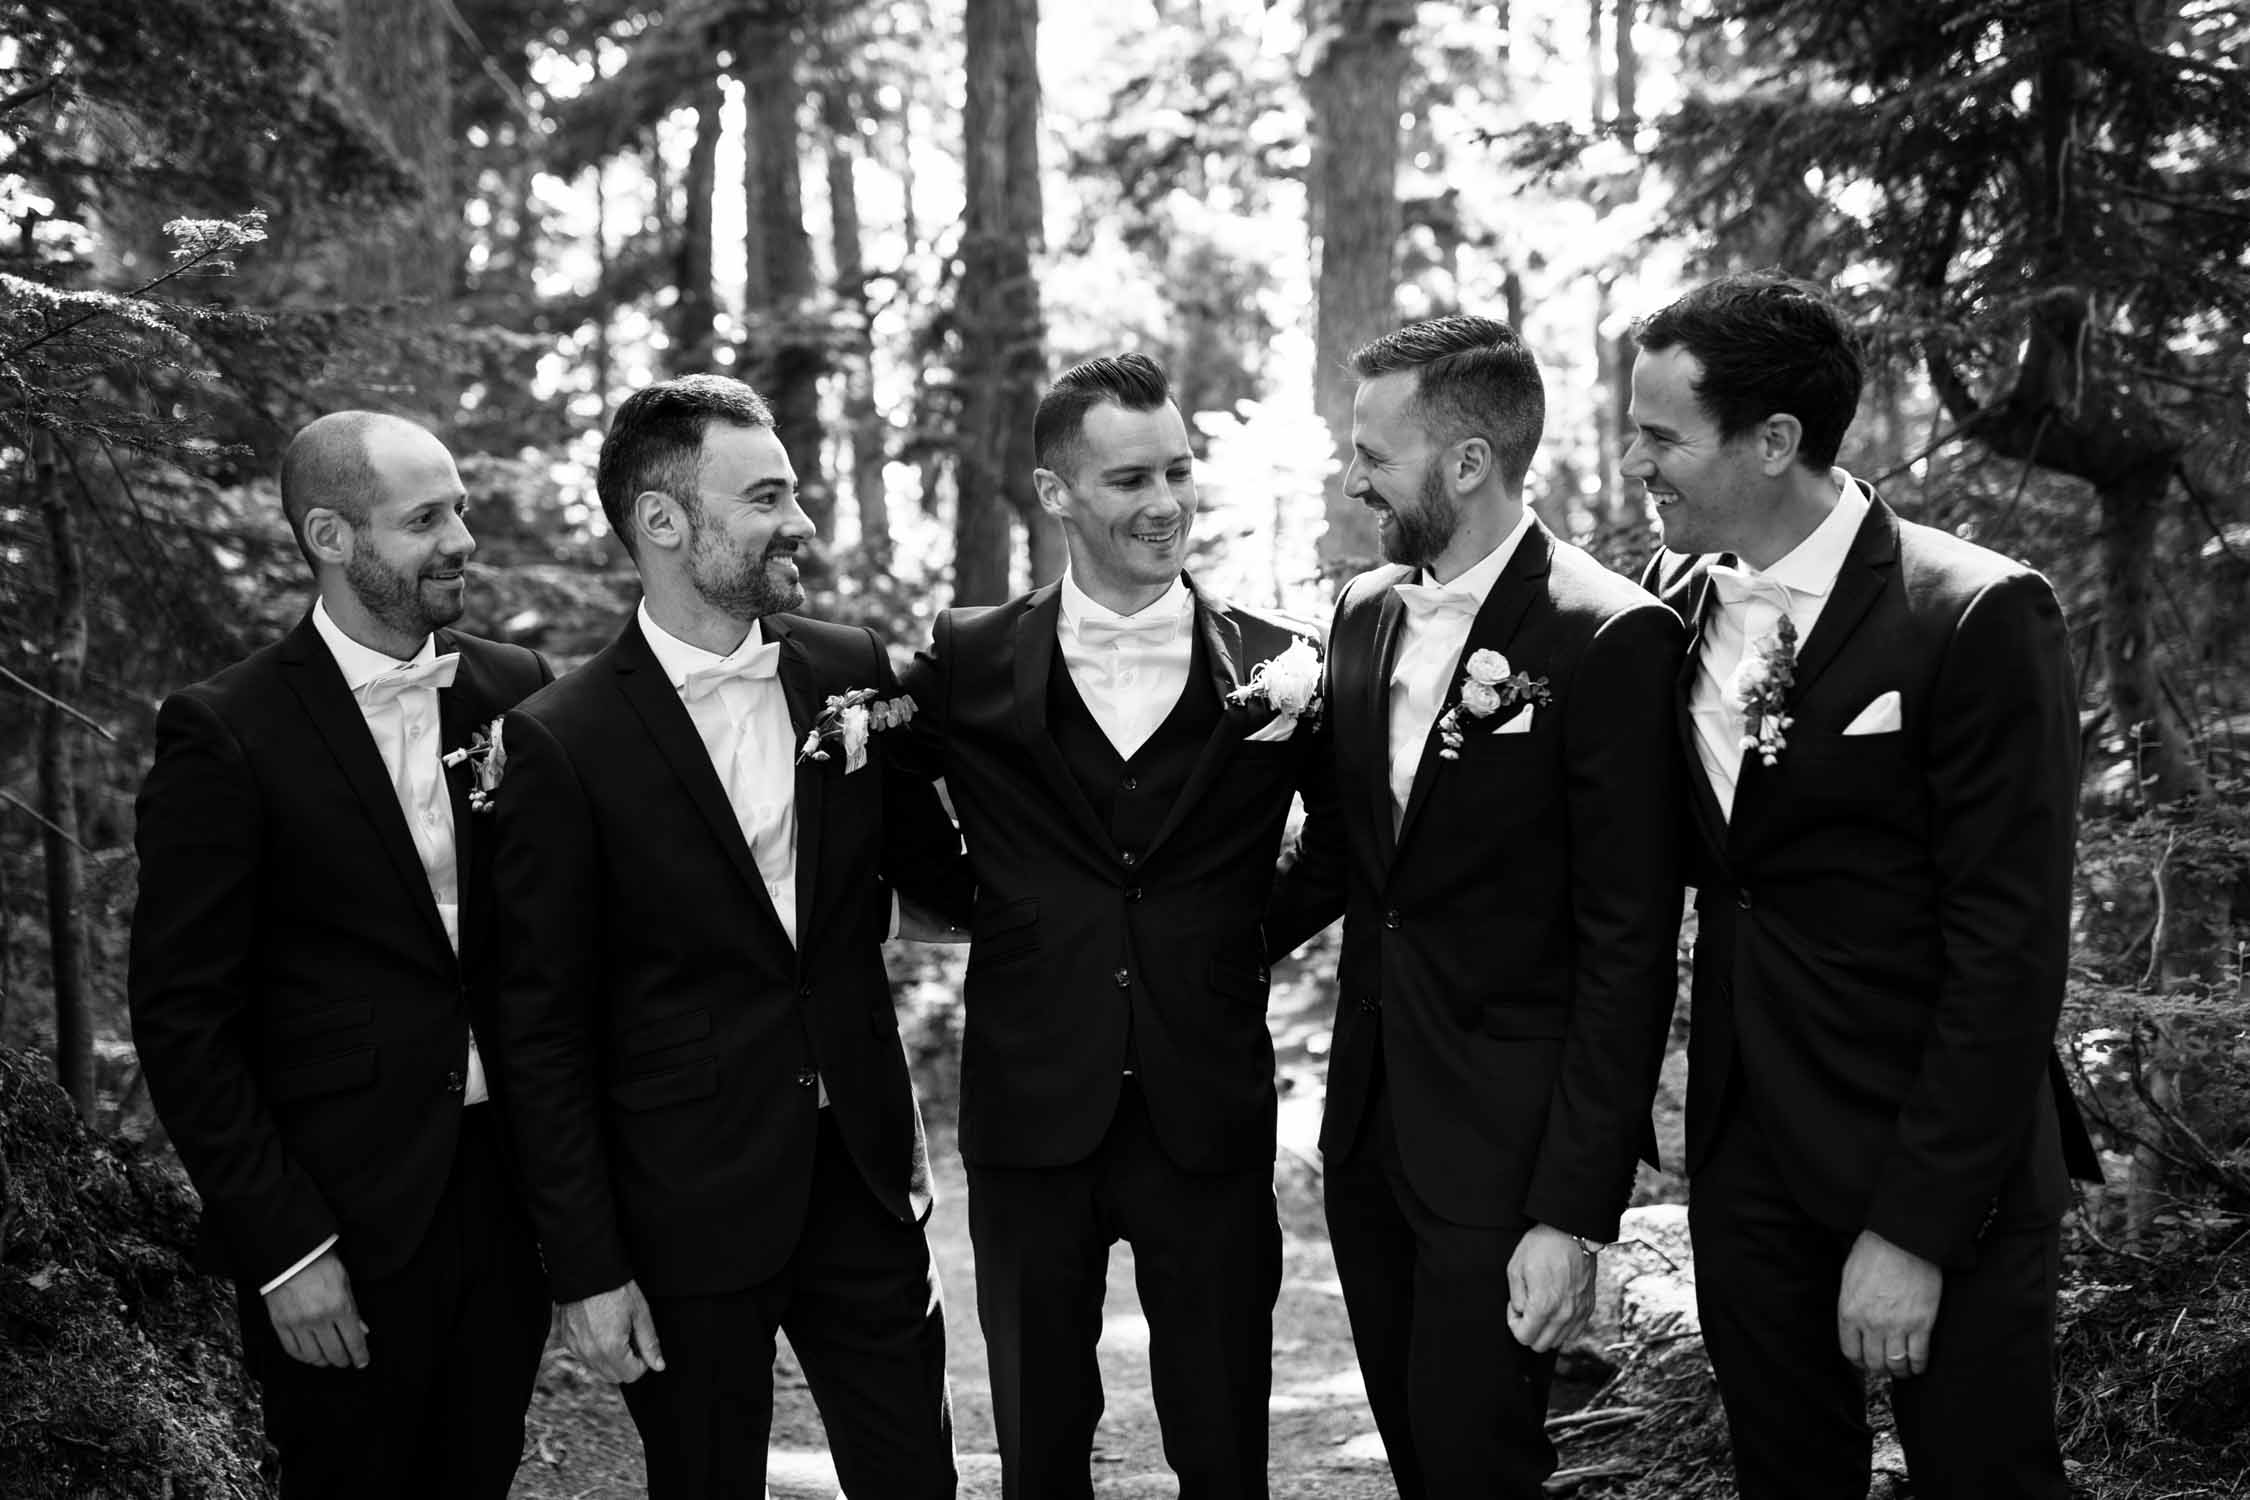 Trendy Outfits Groom and Groomsmen Grouse Mountain Forest